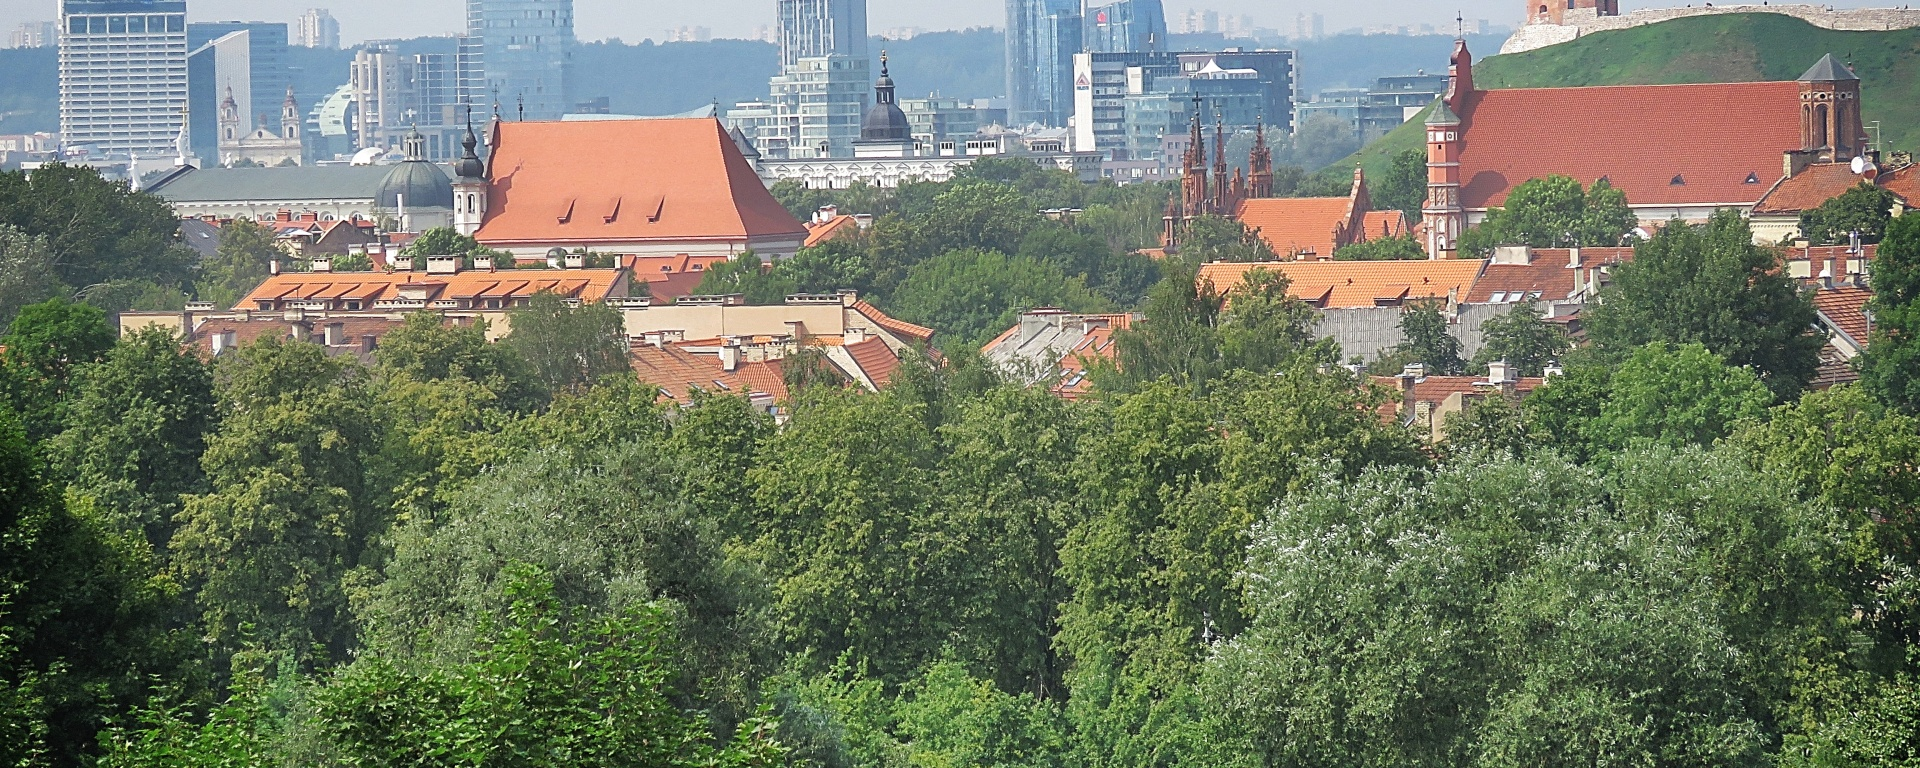 City from a Distance - Villnius Lithuania - by Anika Mikkelson - Miss Maps - www.MissMaps.com